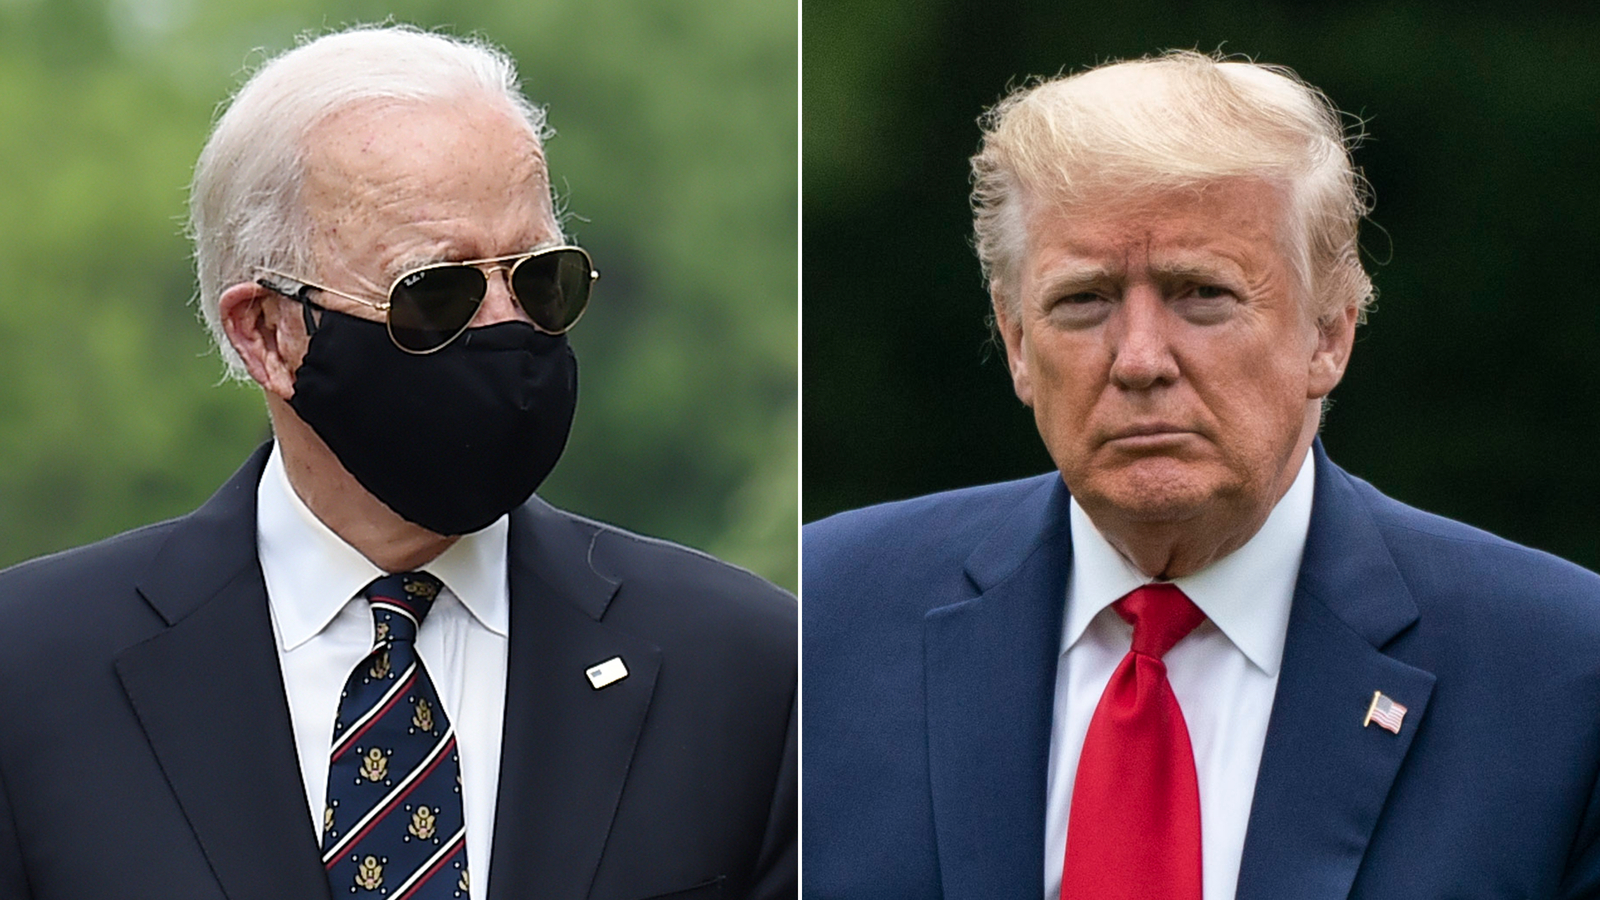 Trump takes his war on masks to new heights